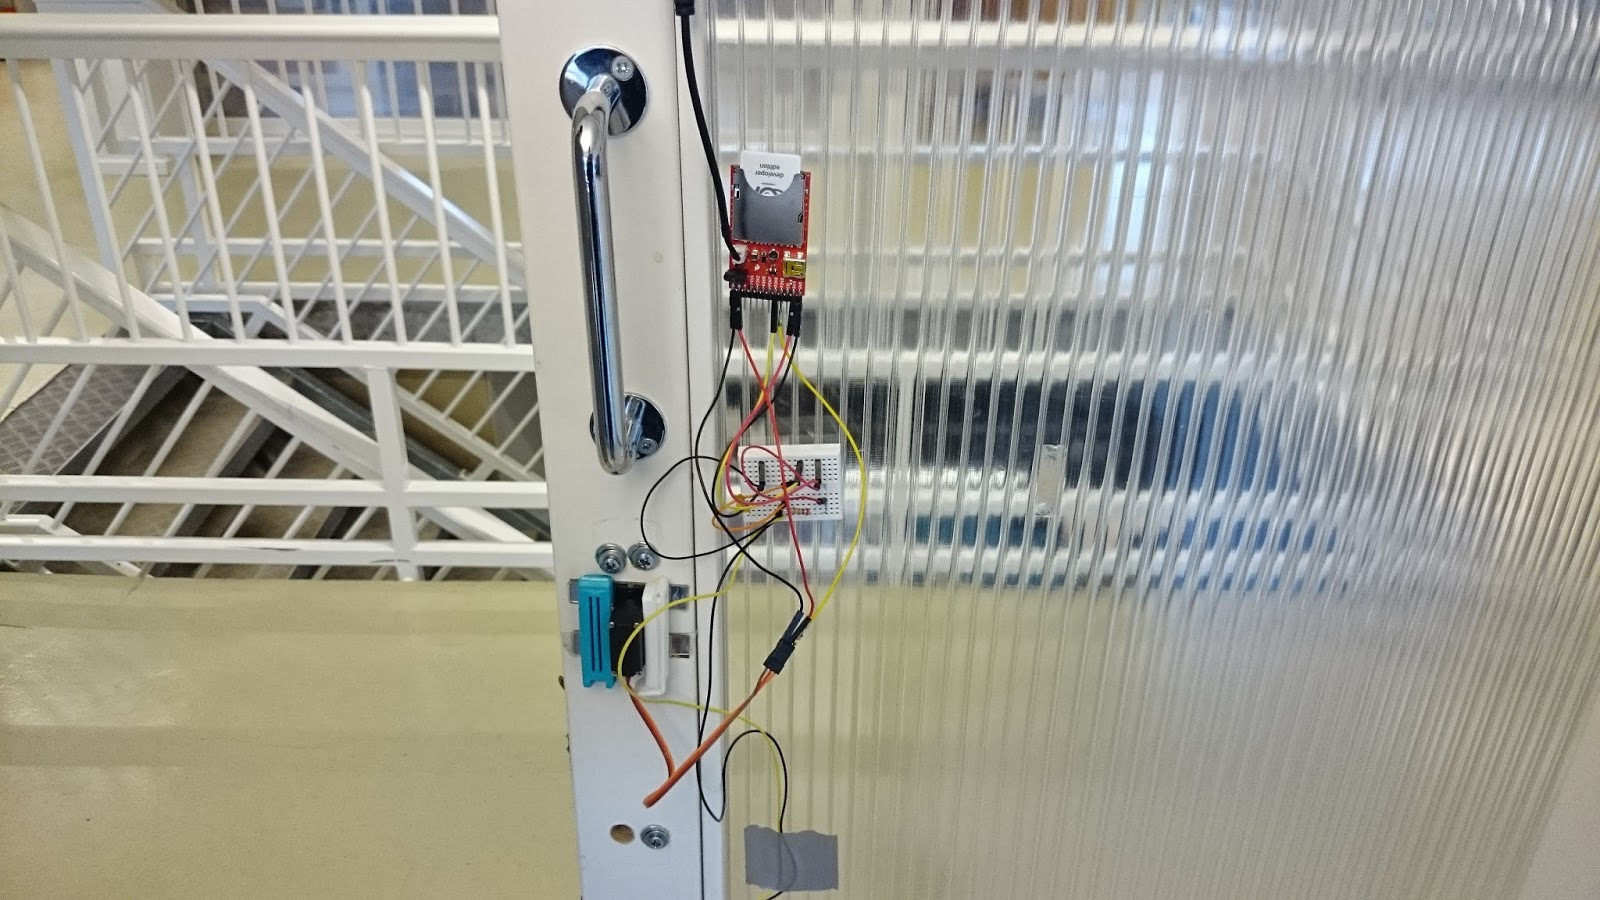 Electric imp automatic door lock - Projects - Electric Imp Forums